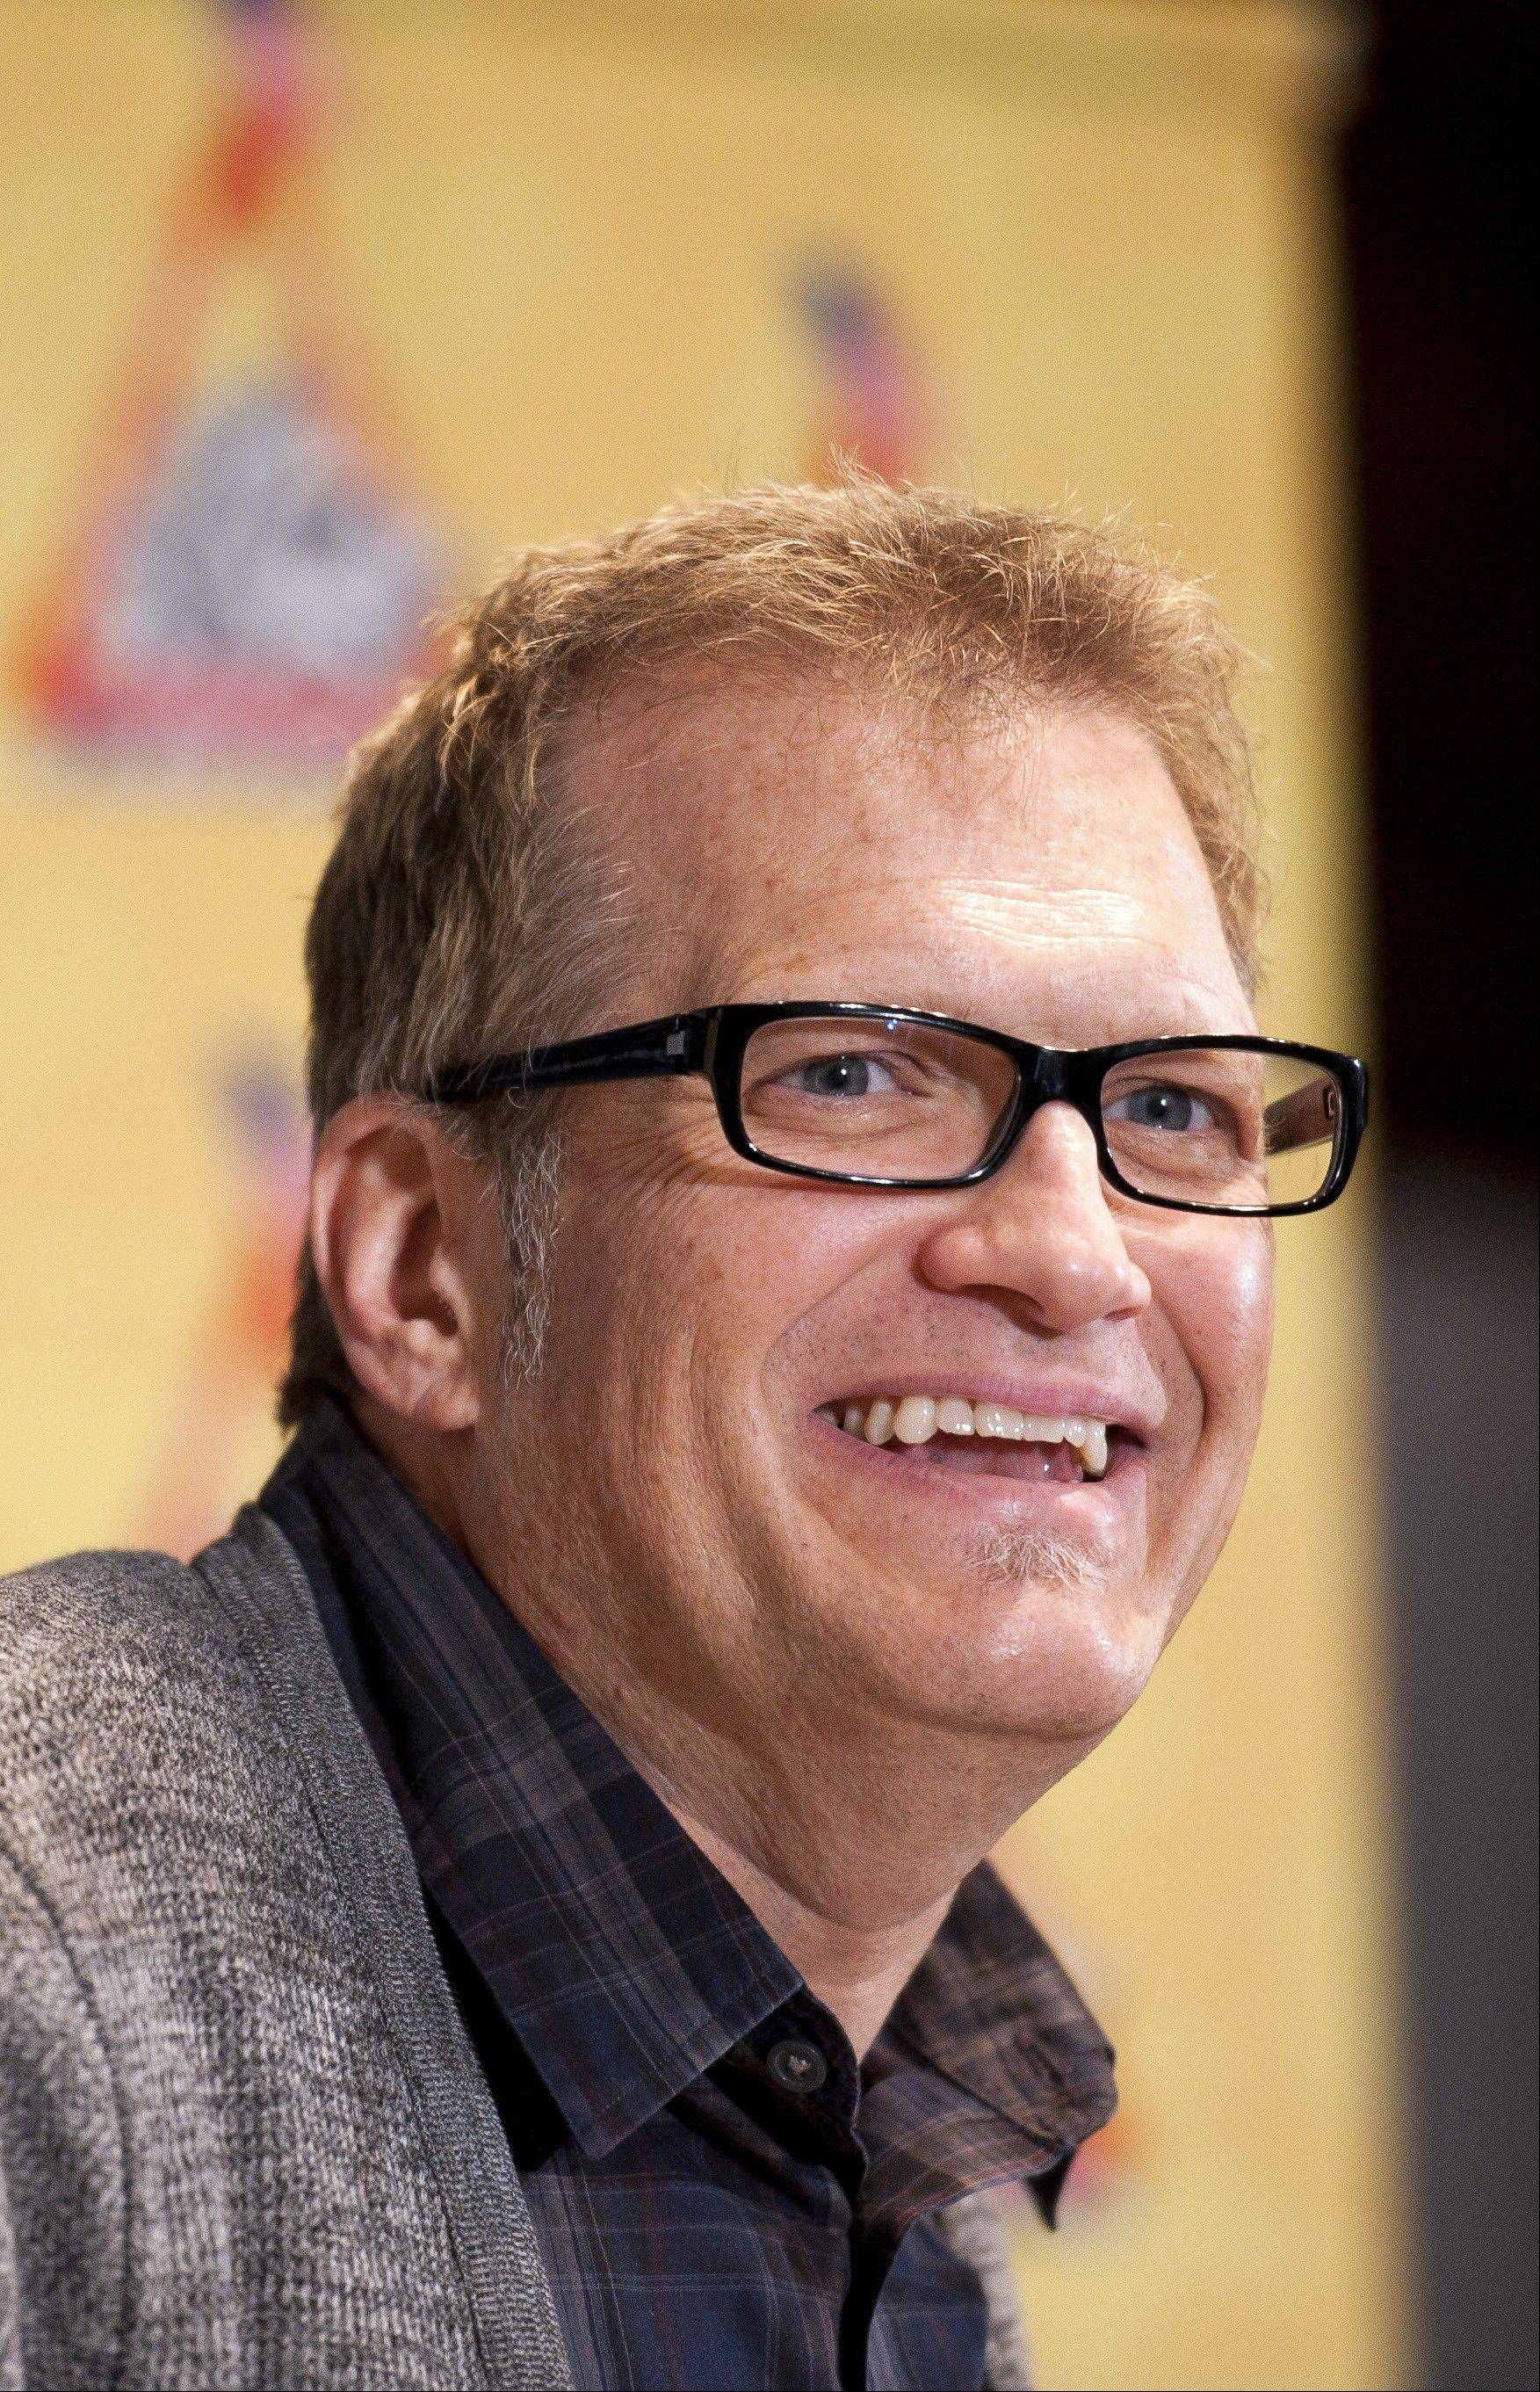 Comedian Drew Carey performs a special engagement at Zanies in Rosemont on Friday and Saturday, Nov. 16-17.